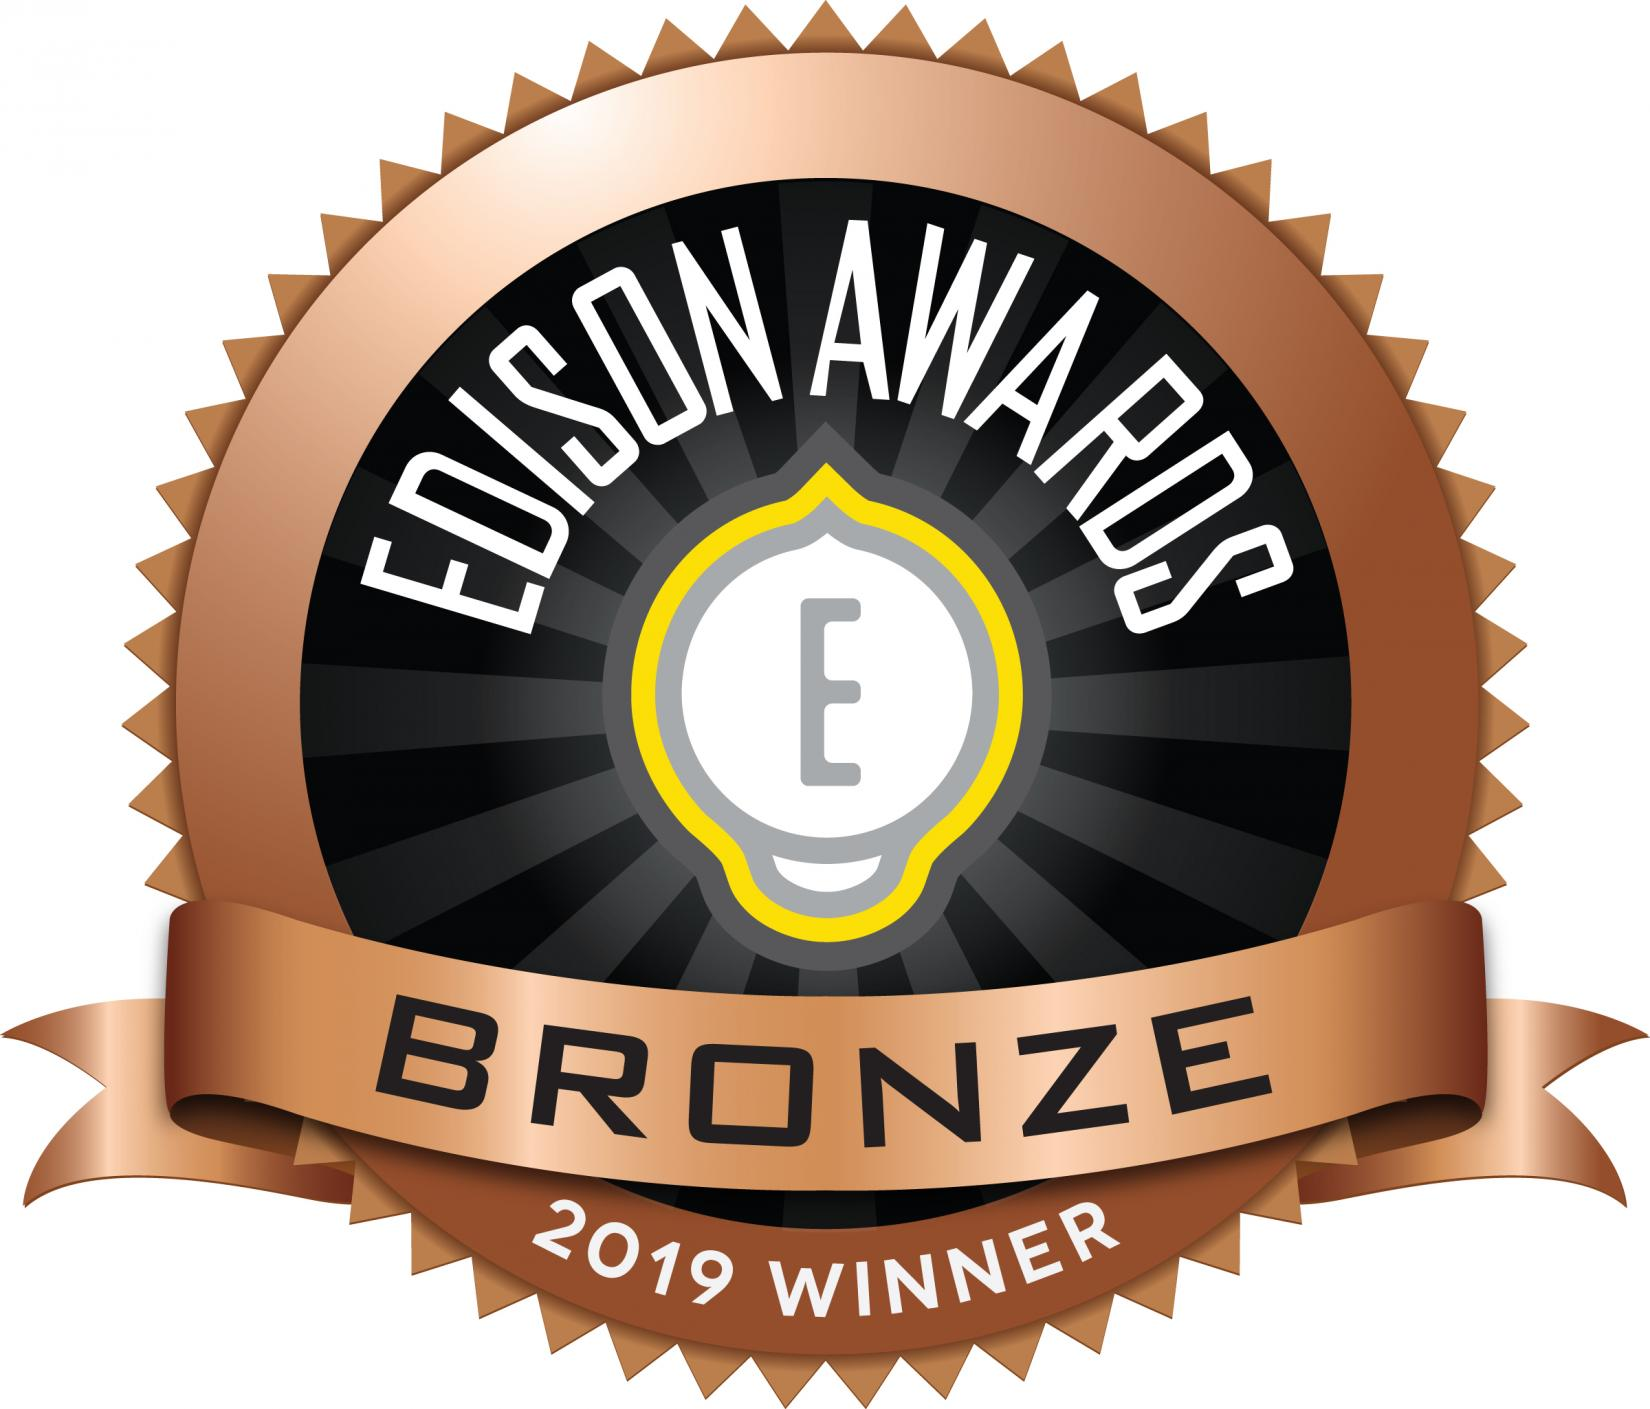 Edison Award Bronze Winner